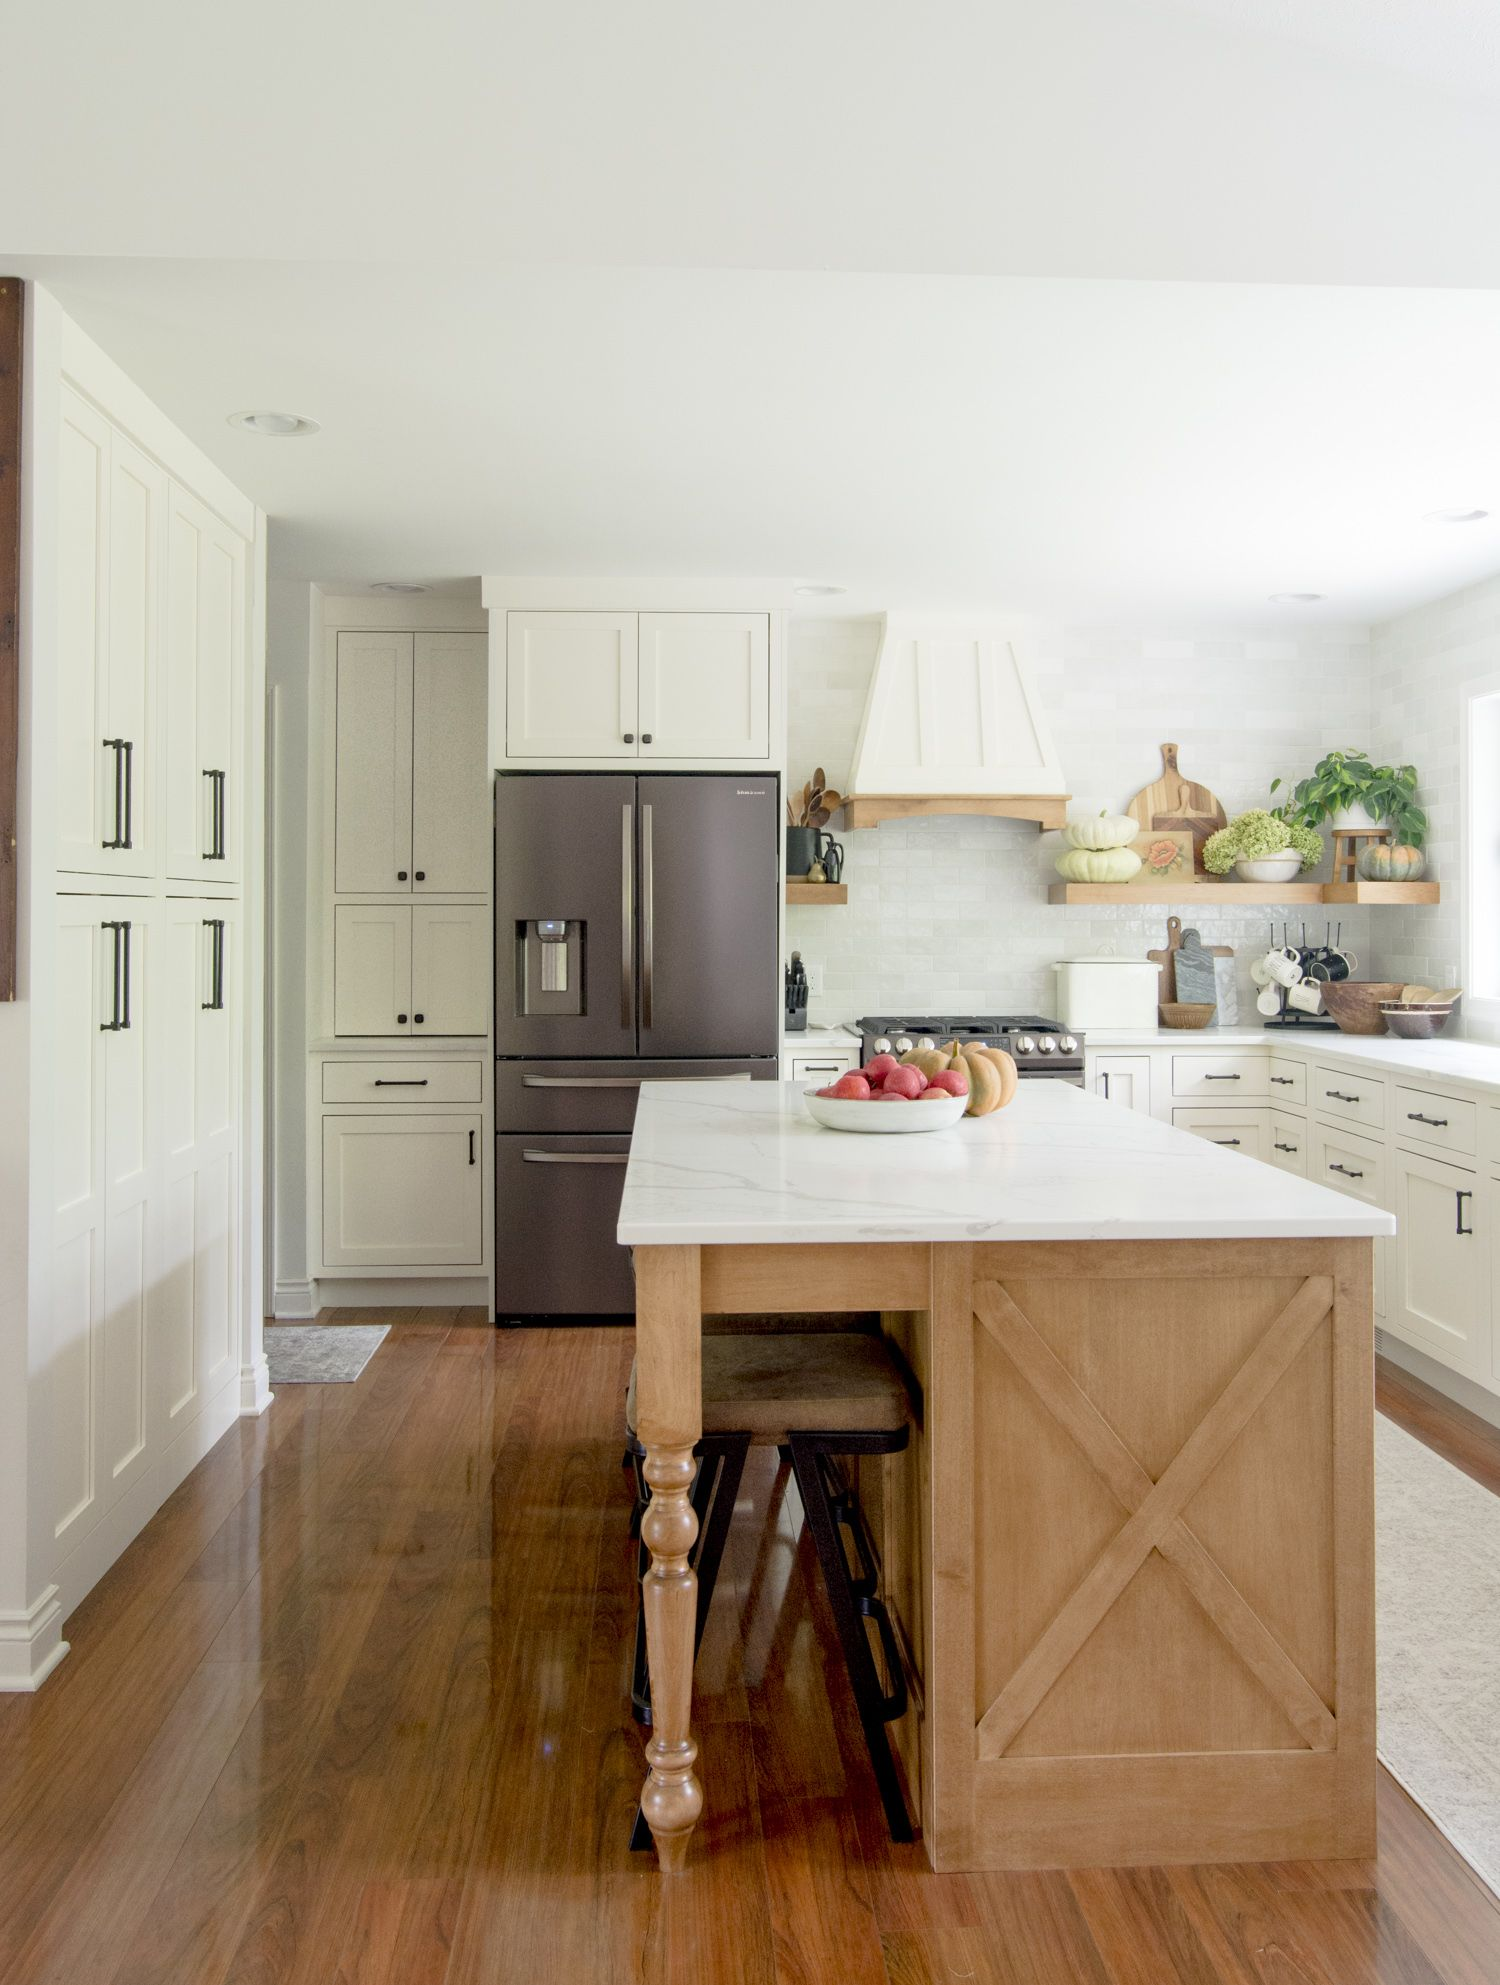 How To Decorate A Fall Kitchen In 5 Minutes Design My Kitchen